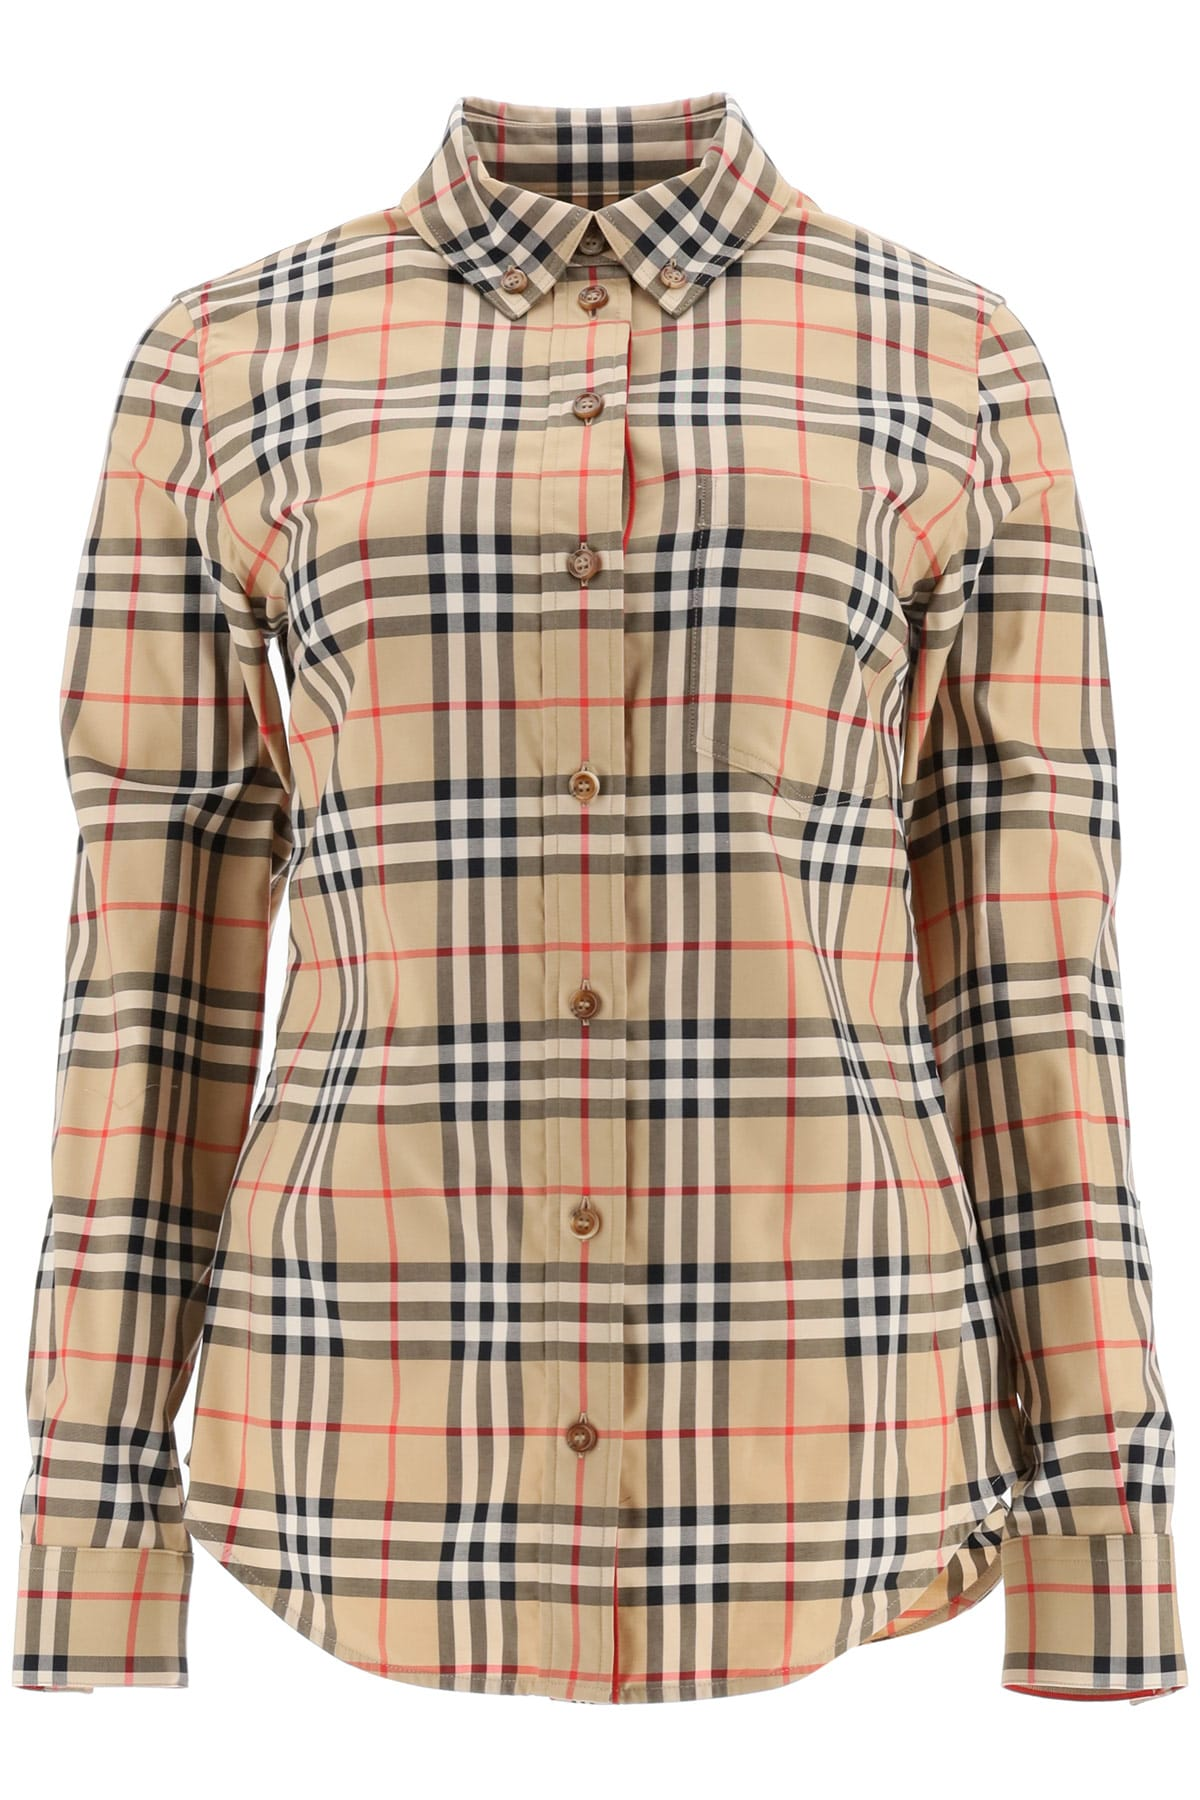 Burberry LAPWING SHIRT VINTAGE CHECK